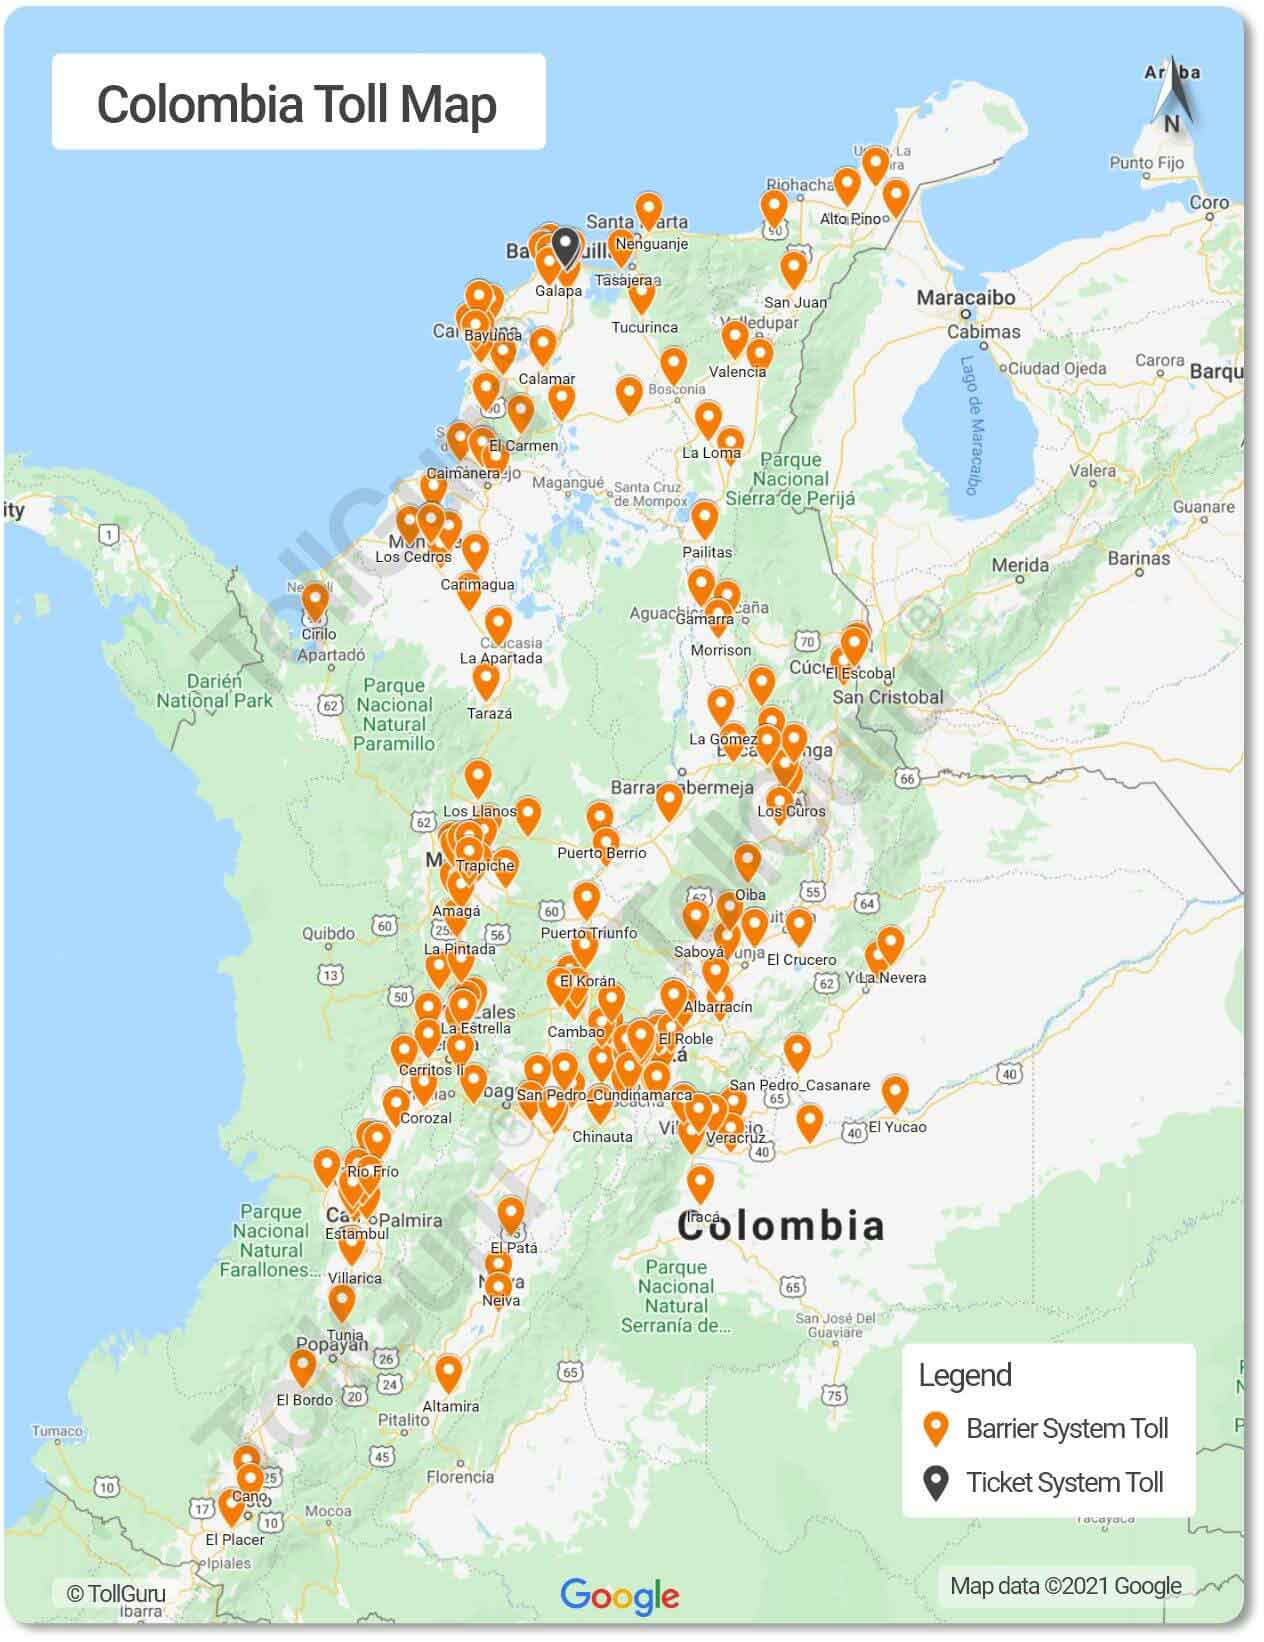 Toll plazas of Colombia on national and departmental roads including Oriente Tunnel, Pipiral toll, Circasia toll and those connecting Bogotá to other cities.